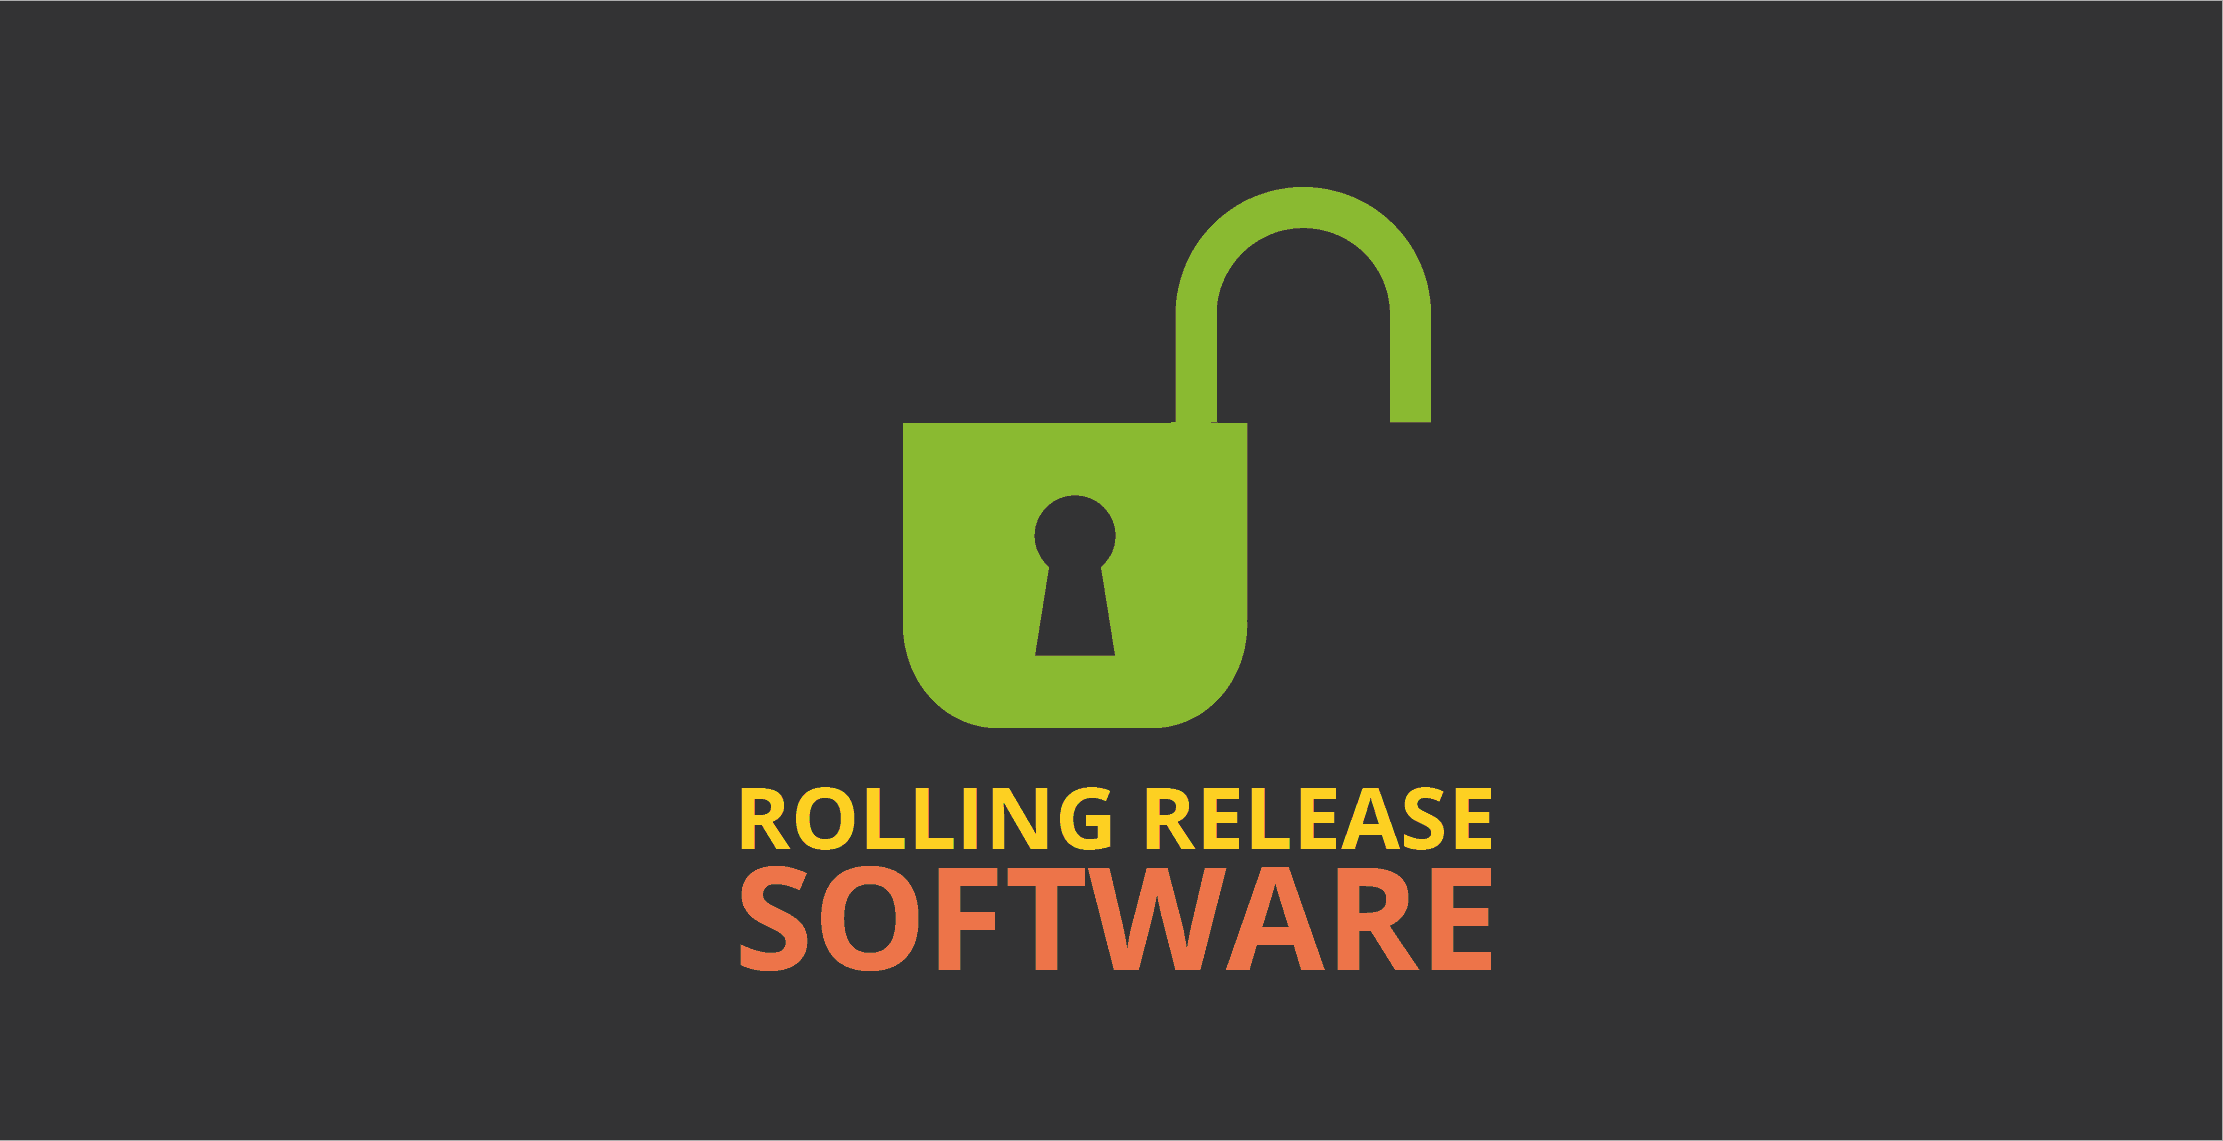 Rolling Release Software